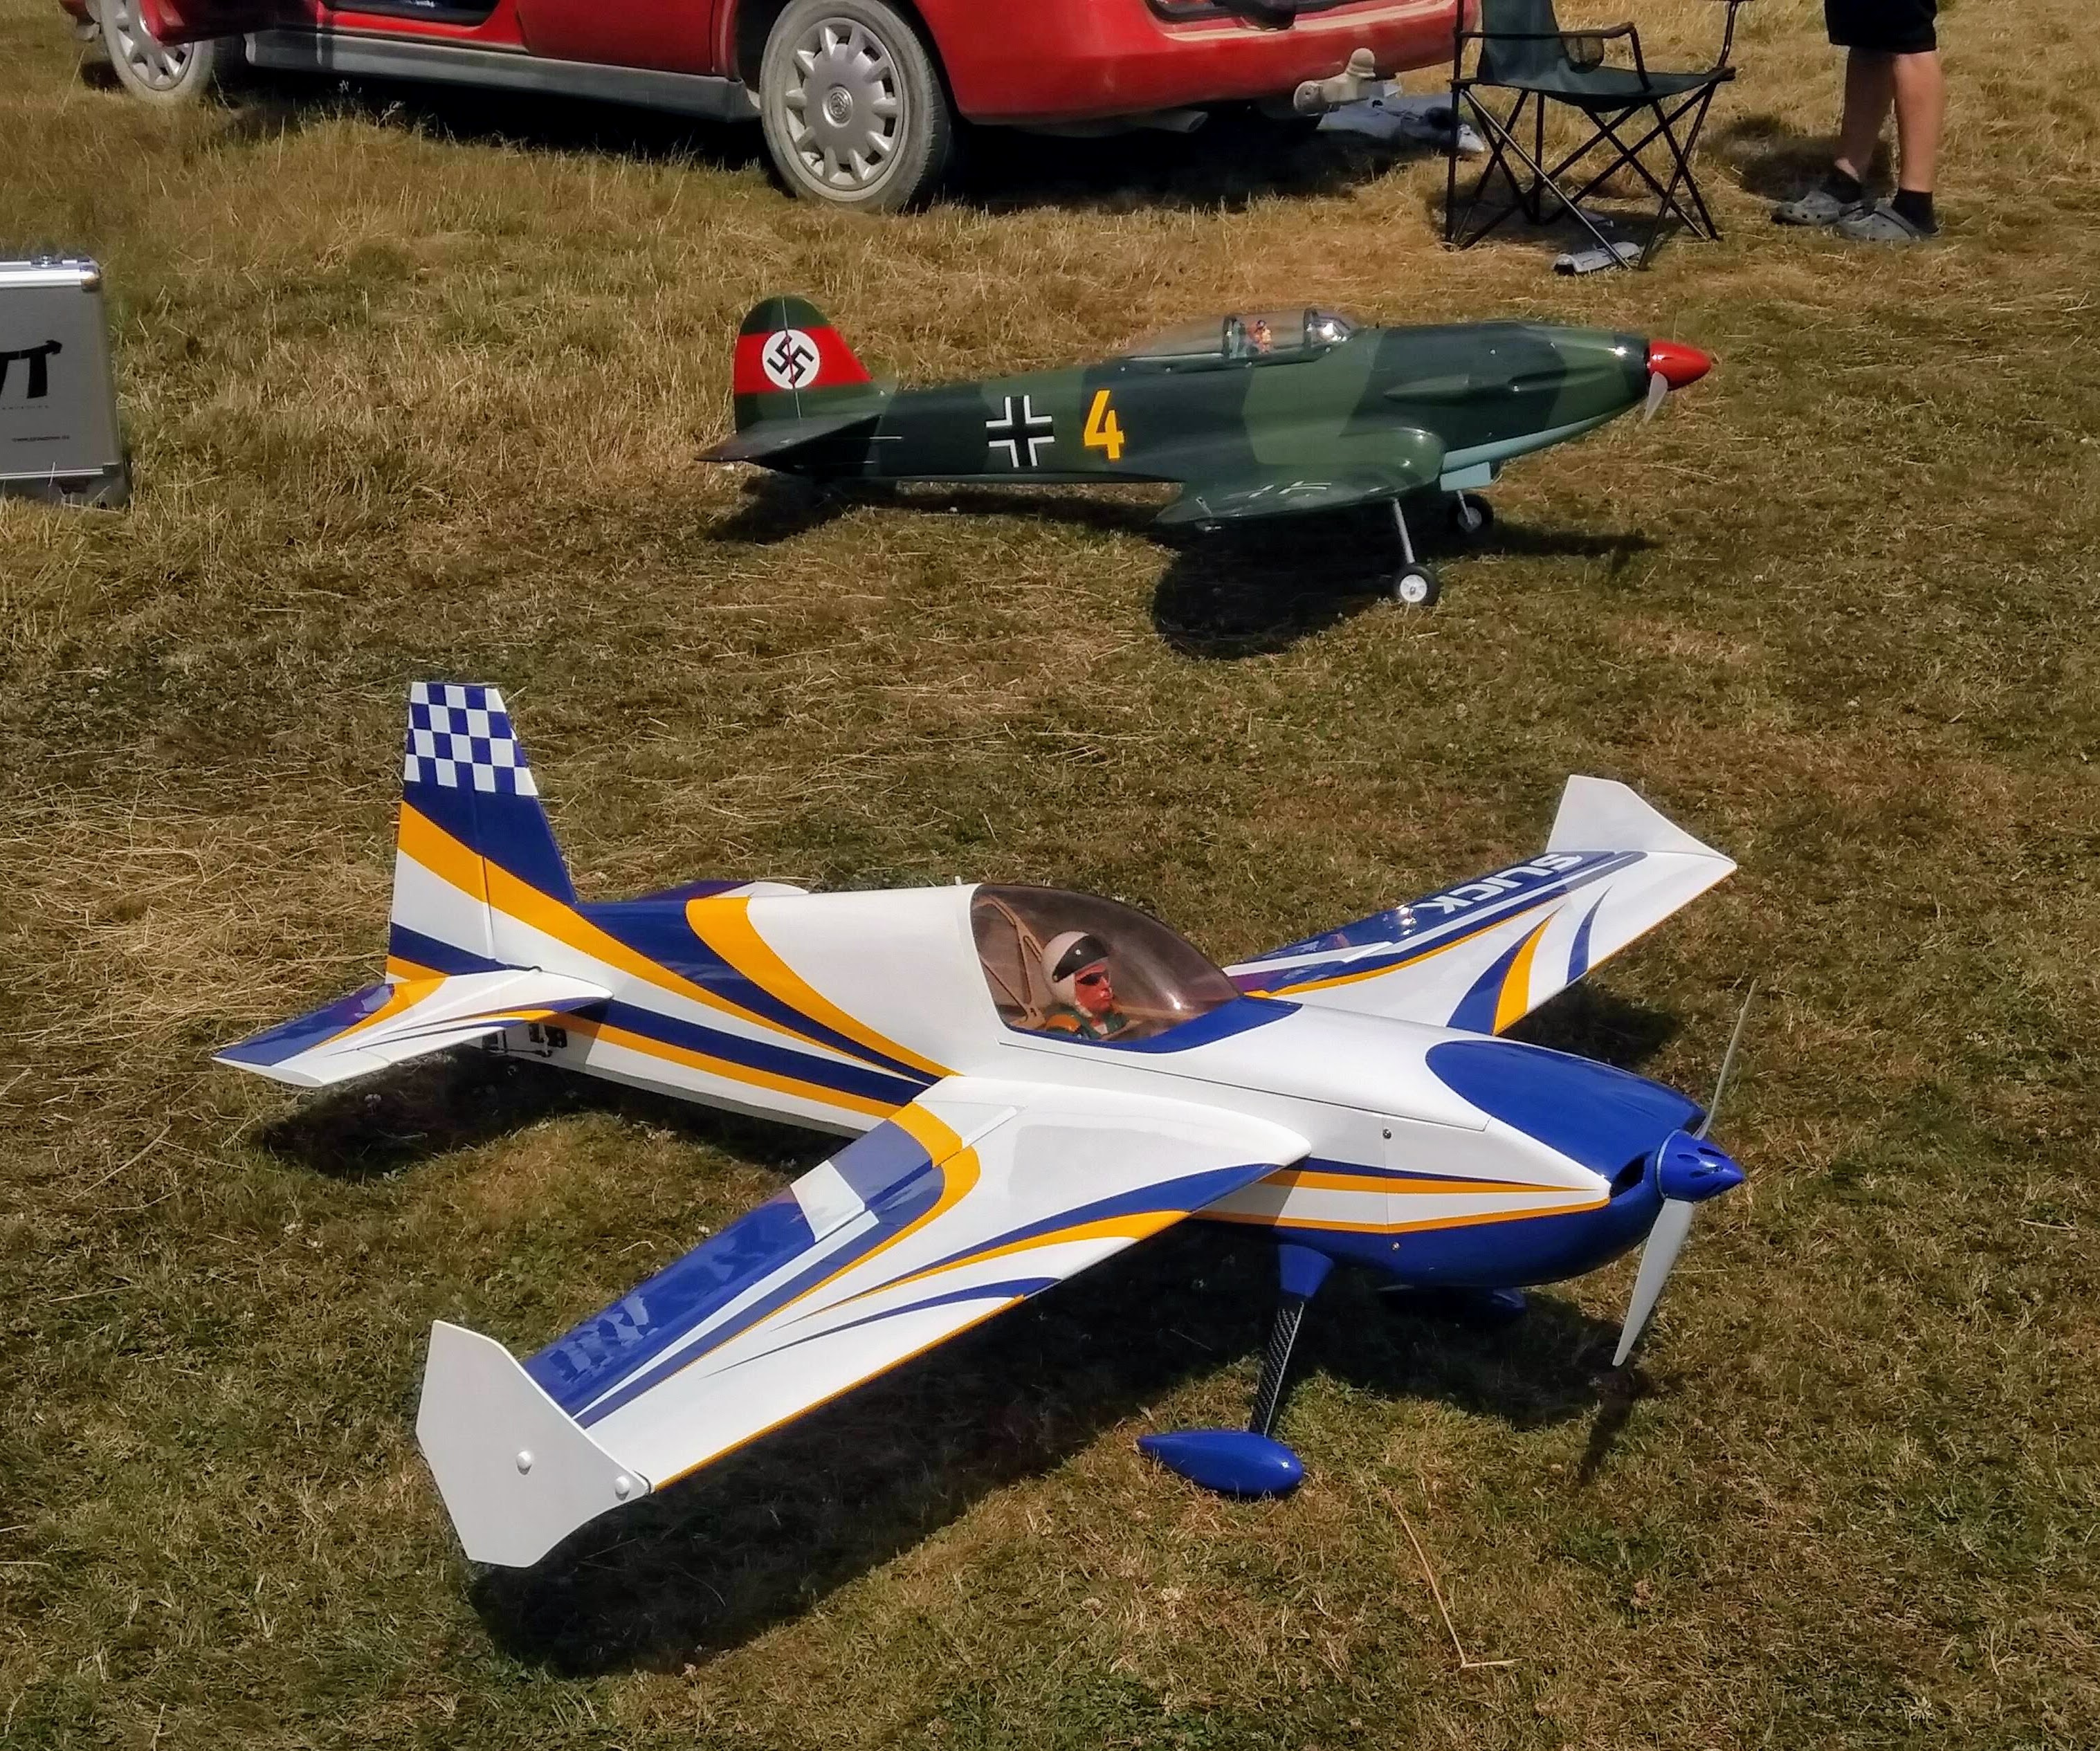 Black Horse Heinkel HE112B and Goldwing Slick540